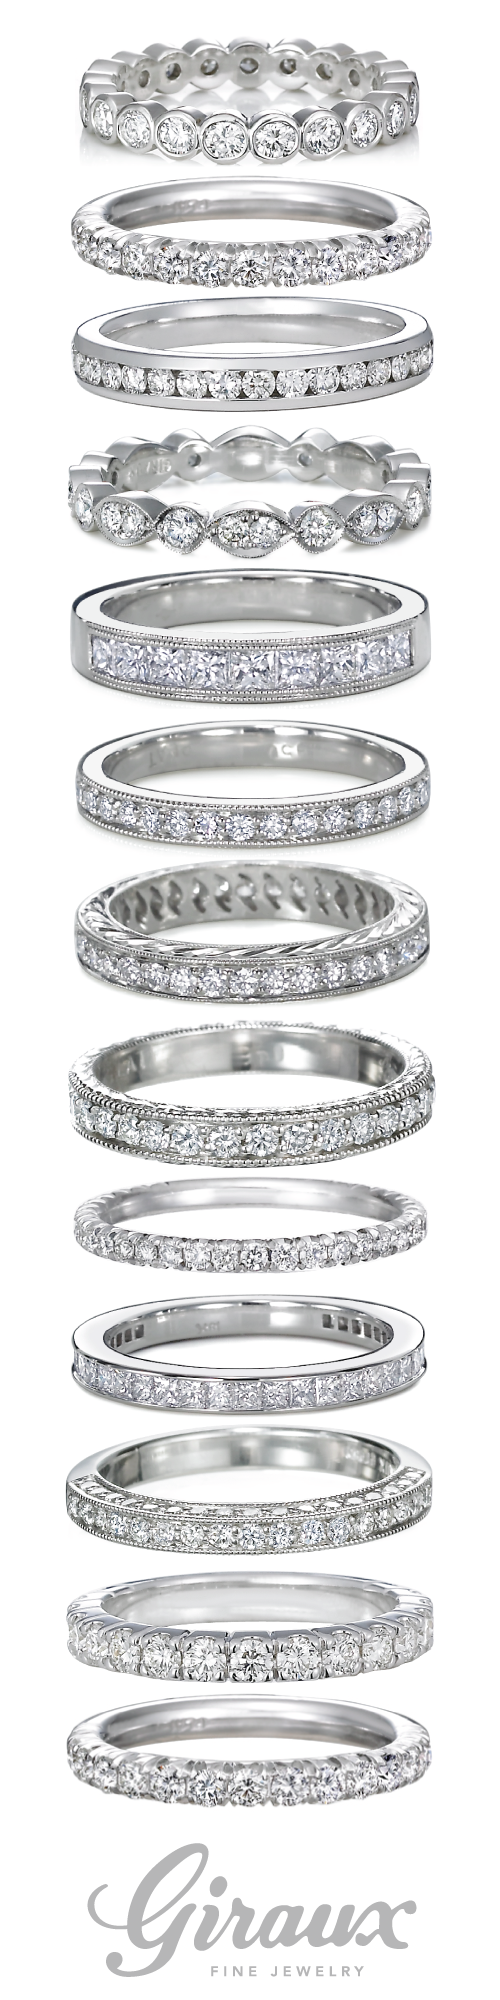 winston band ring engagement cushion micropave diamond cut rings styles stewart vert weddings harry martha bands